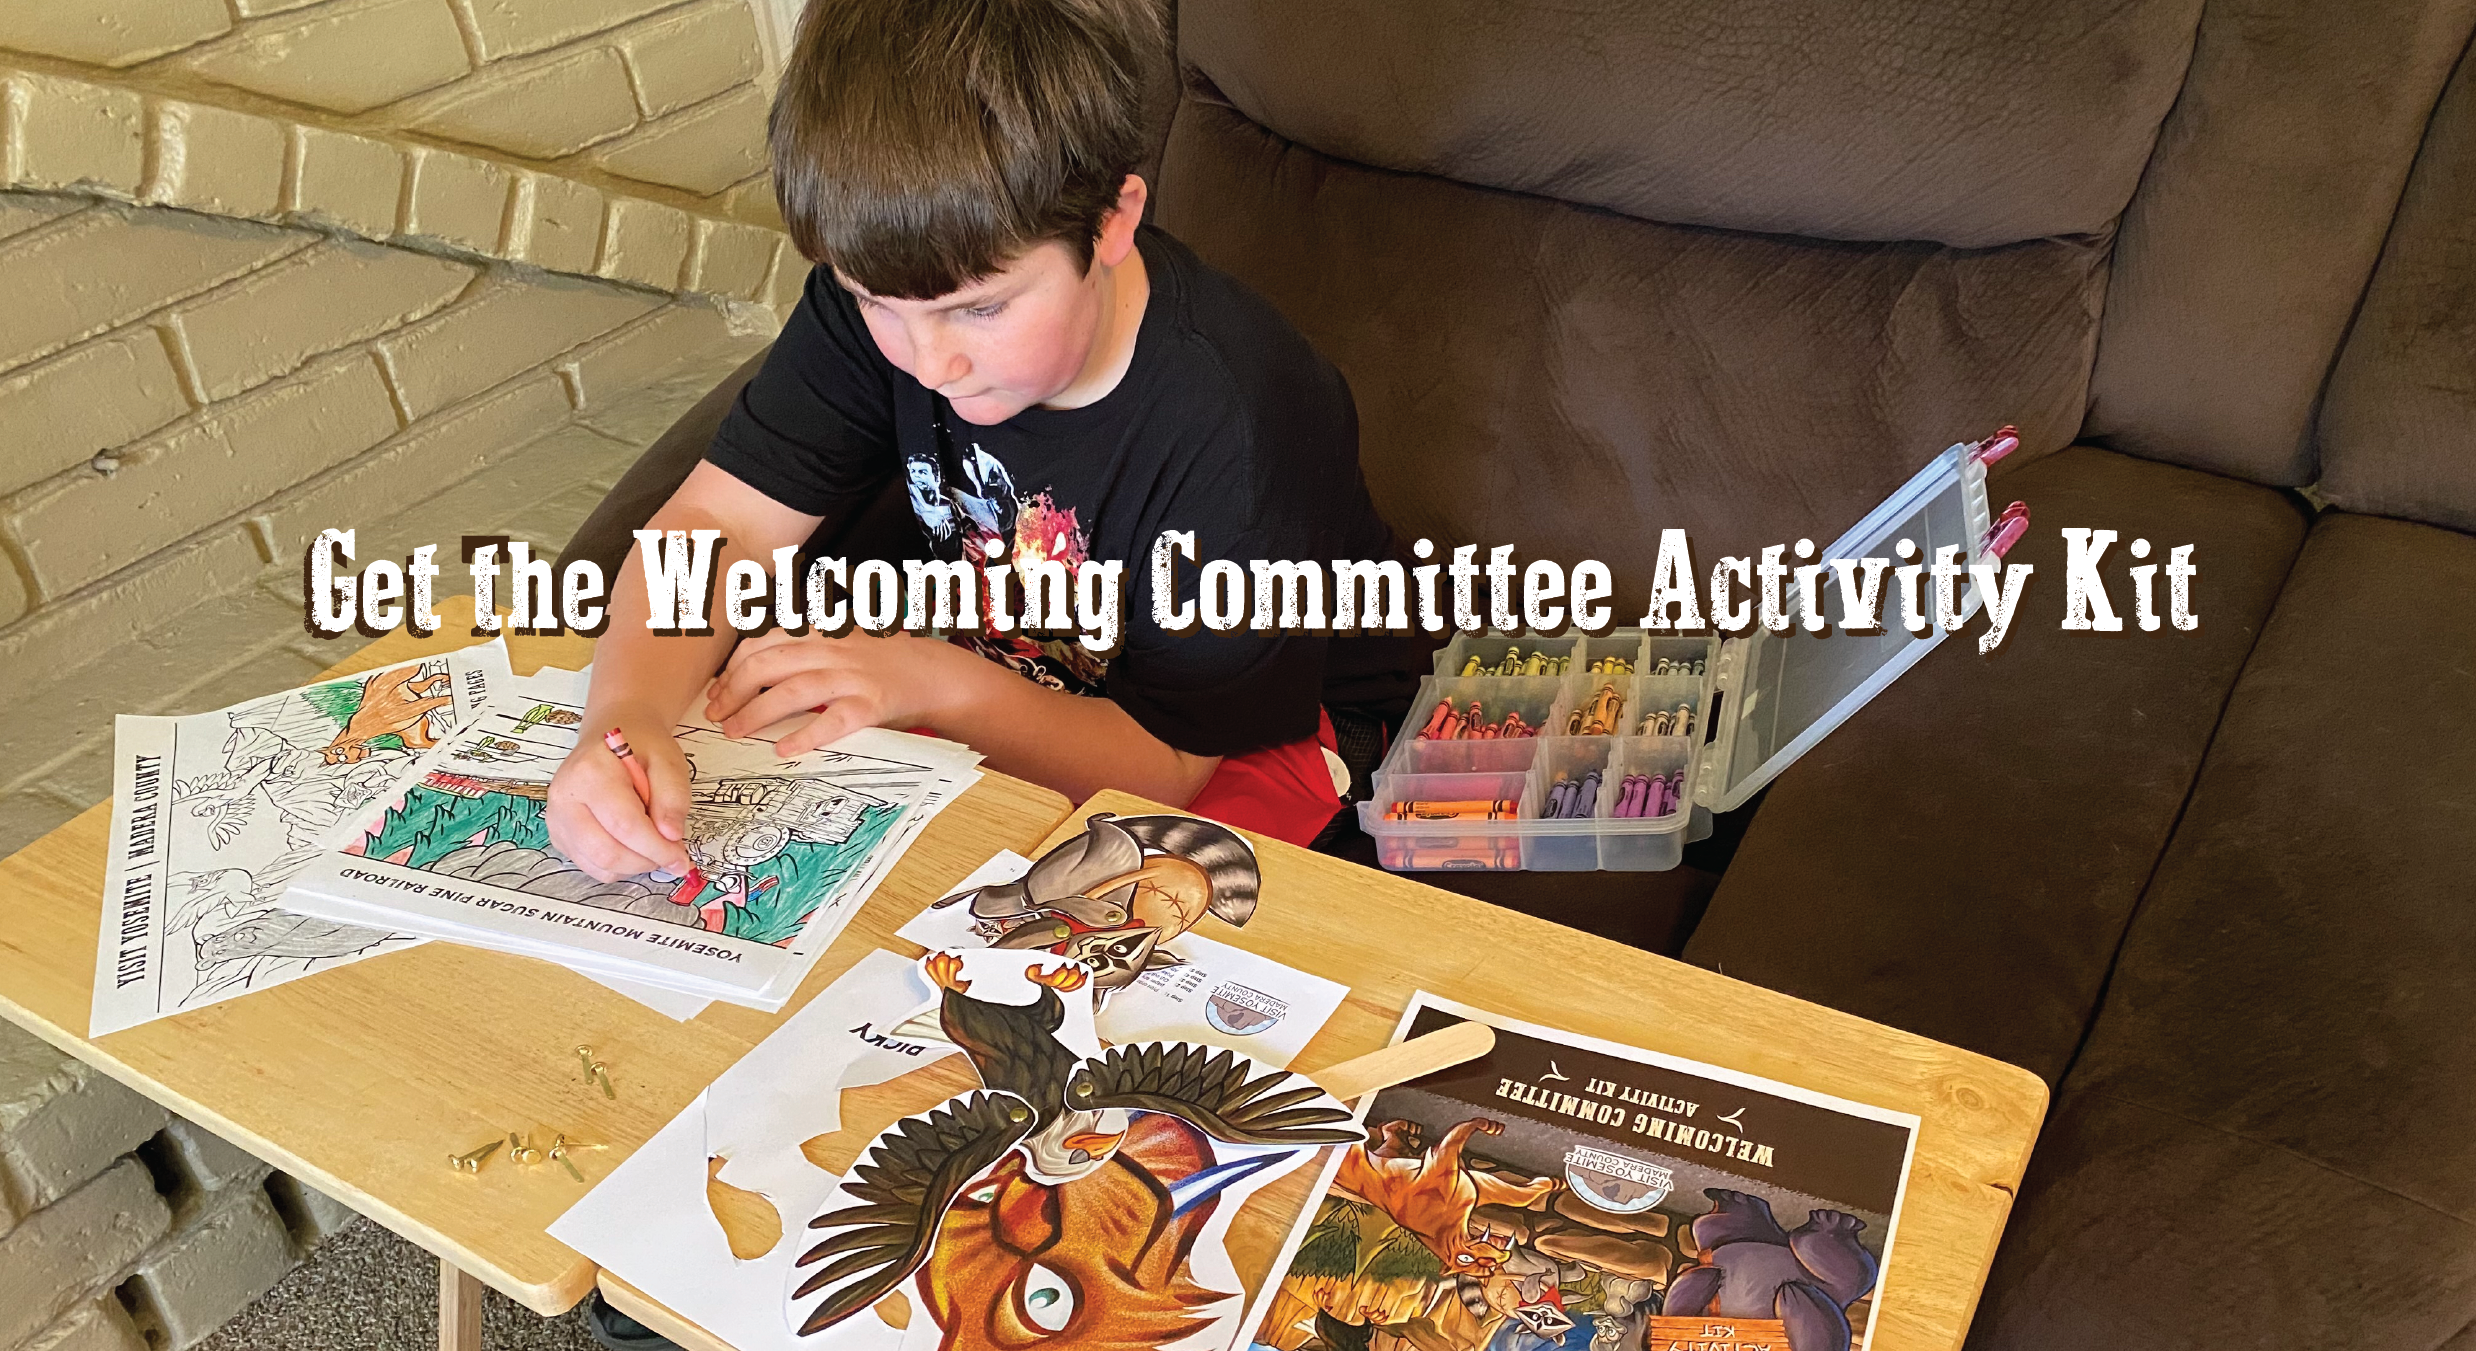 Welcoming Committee Activity Kit